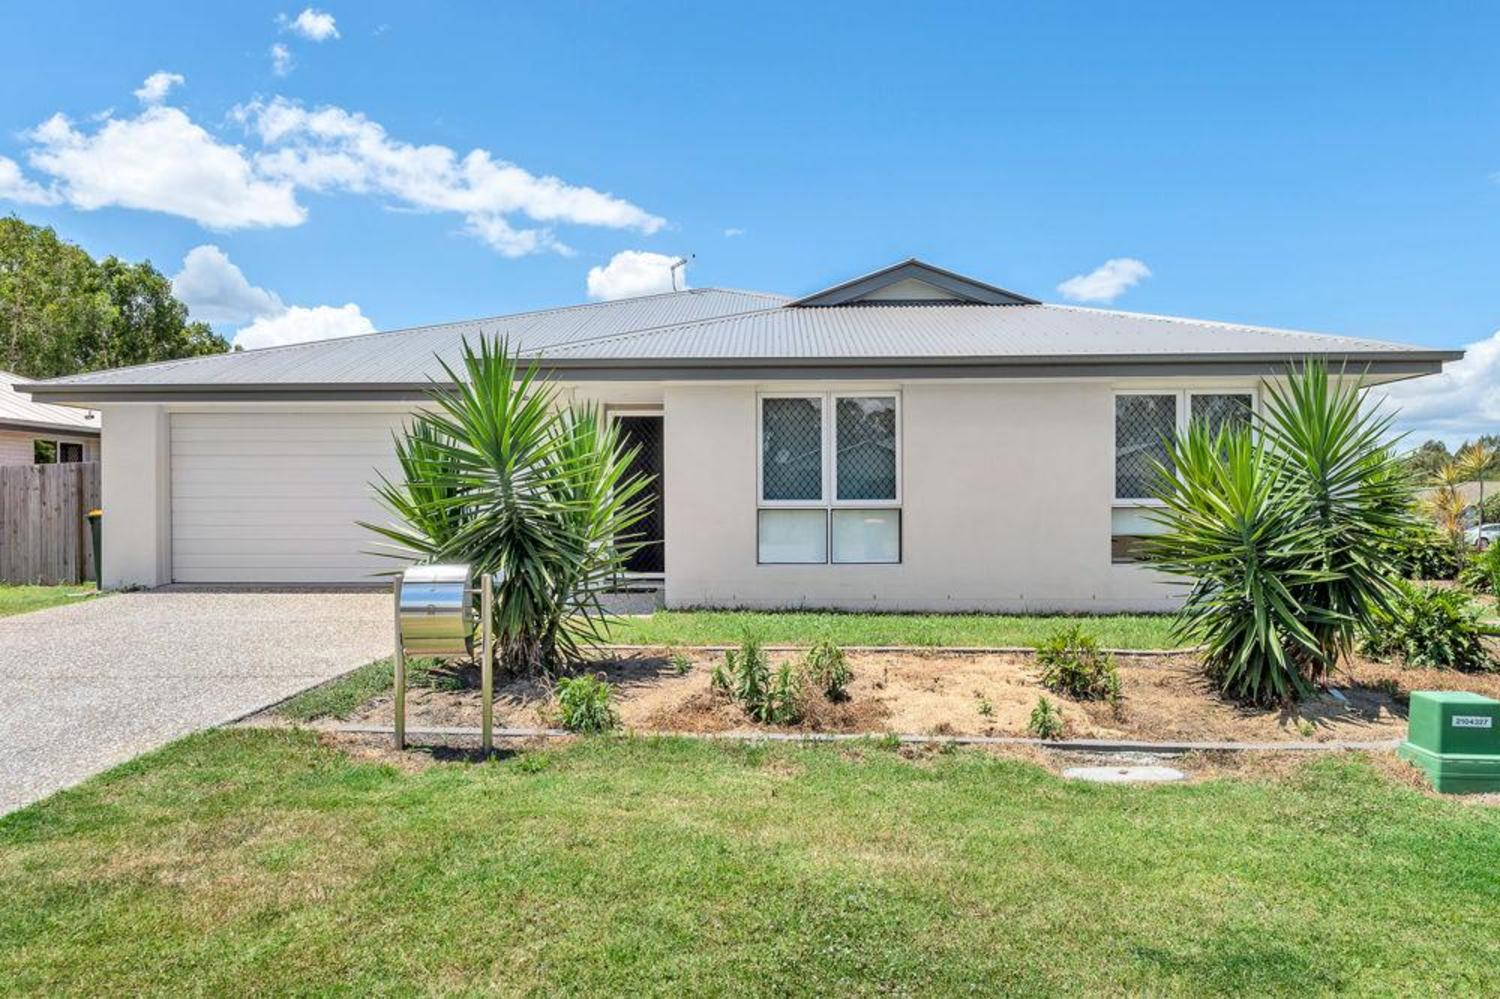 BEAUTIFUL 3 BEDROOM HOME CLOSE TO SCHOOLS, SHOPS, PARKS AND THE BRUCE HIGHWAY!